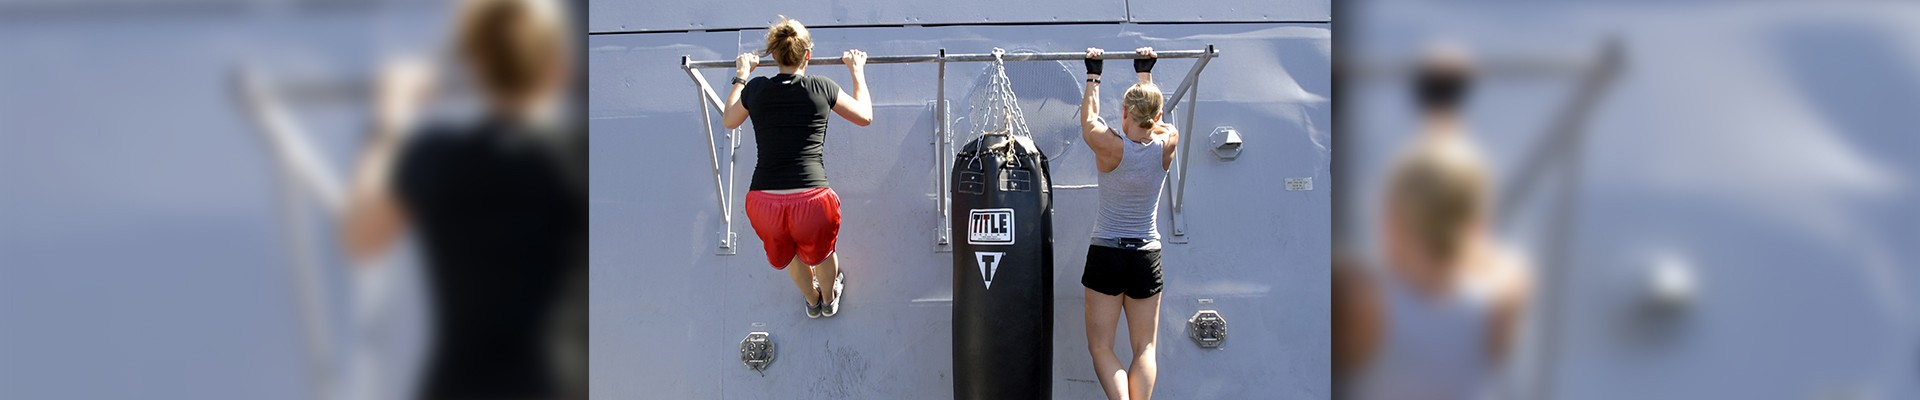 two women doing pull ups